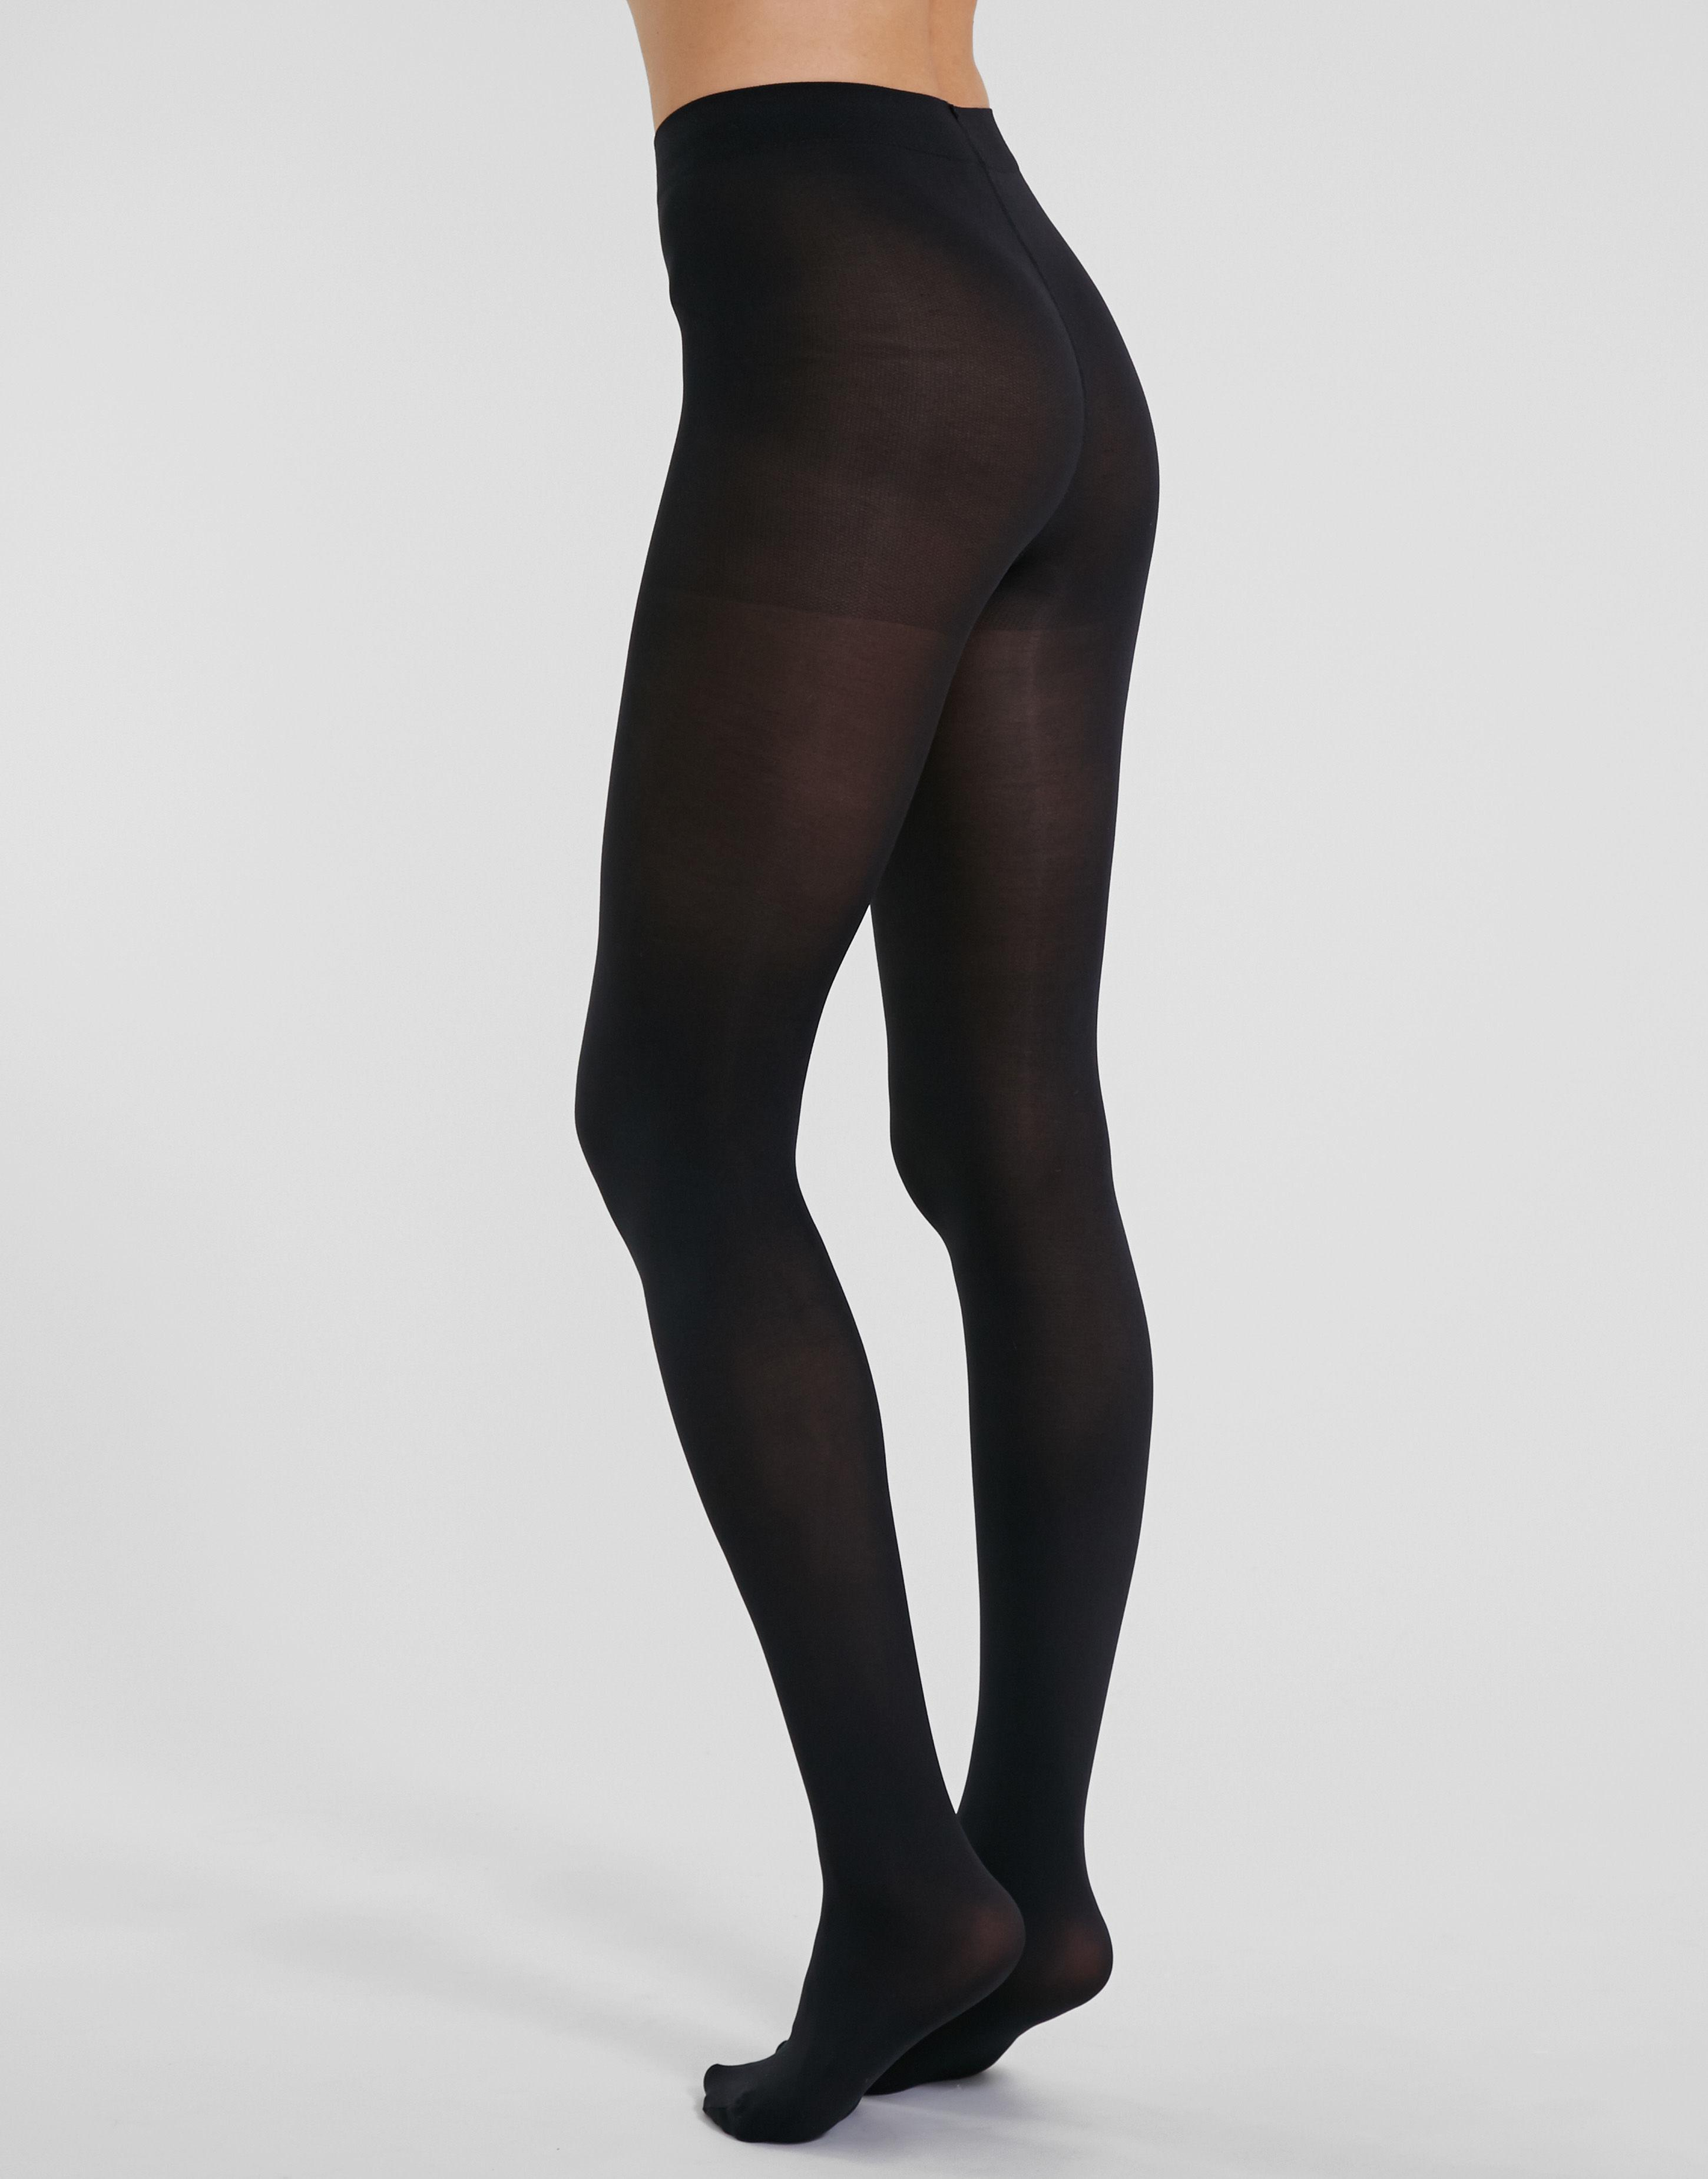 c57881c14c291 Charnos 60 Denier Opaque Tights in Black - Lyst